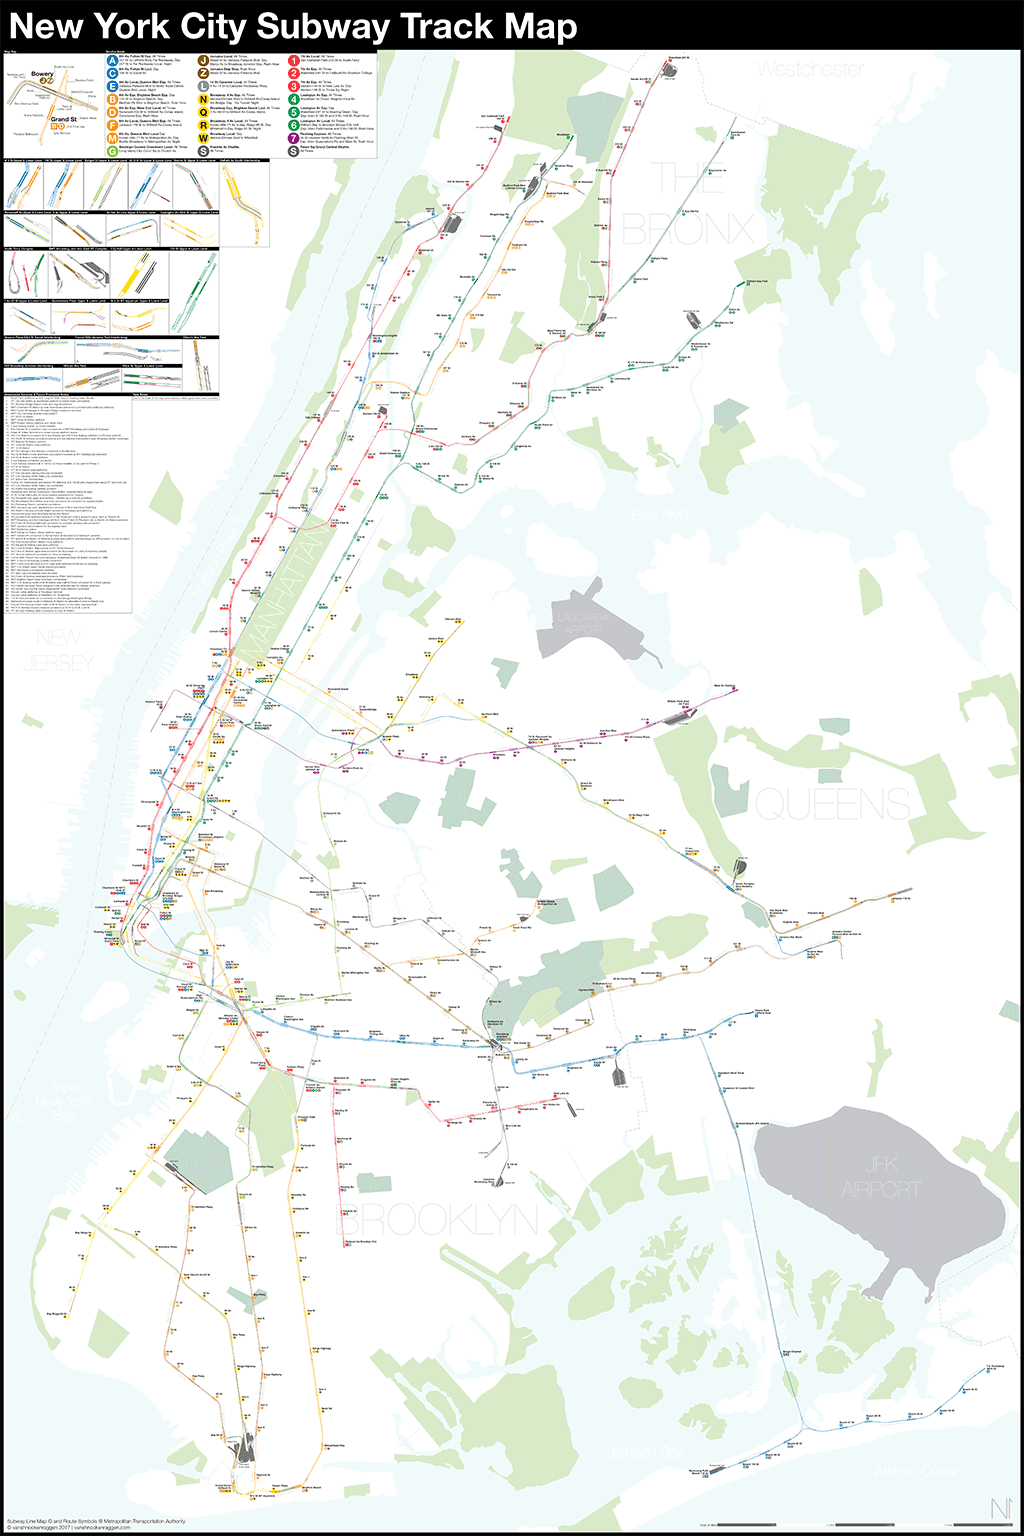 new york city subway diagram remote start installation wiring diagrams a complete and geographically accurate nyc track map click the image to download pdf